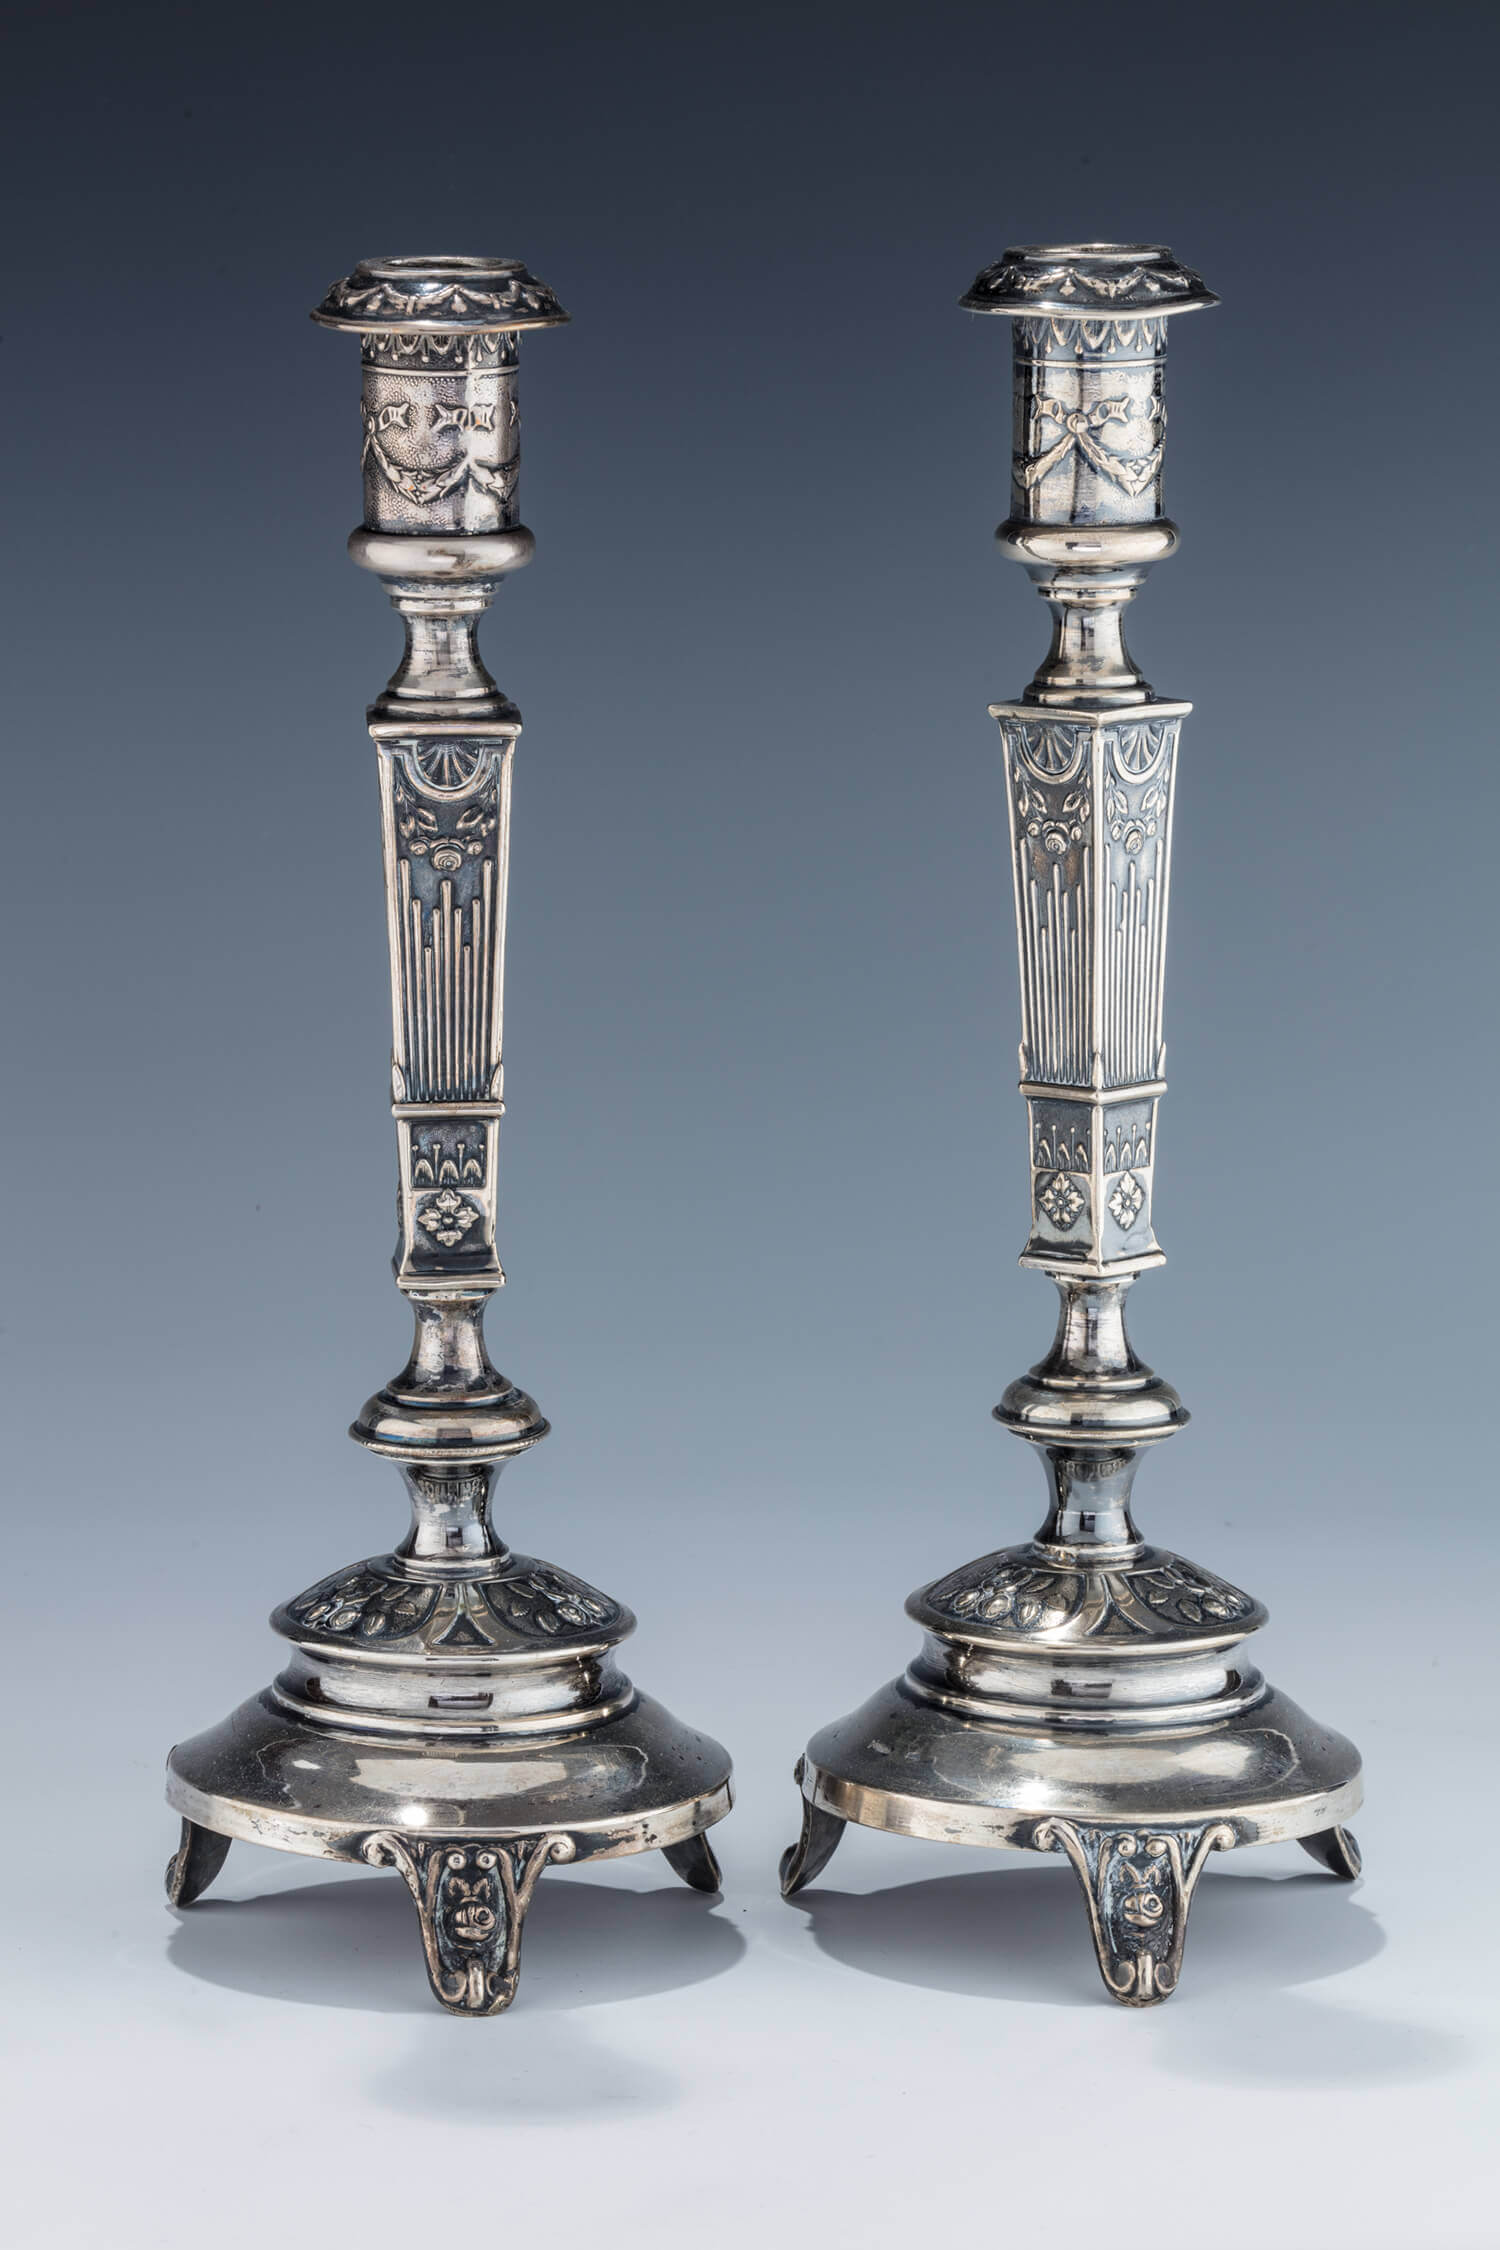 010. A PAIR OF SILVER CANDLESTICKS BY M